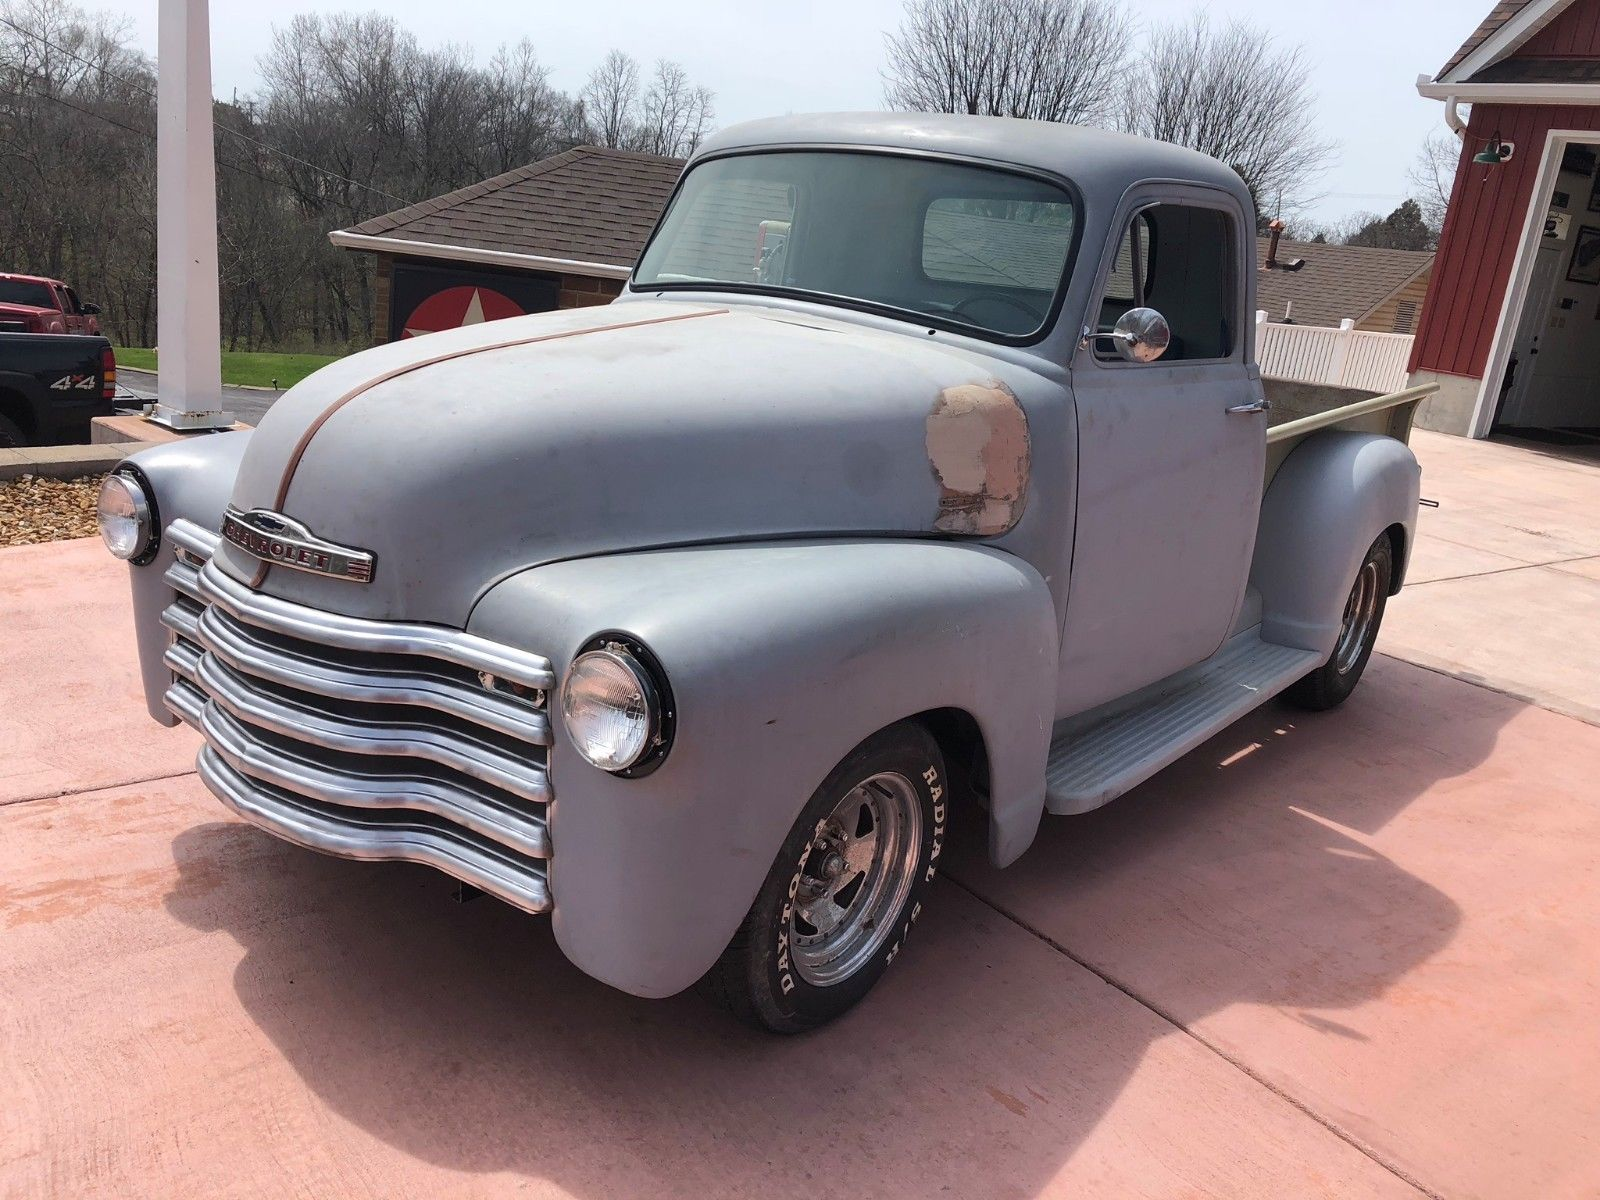 Trucks For Sale: Project 1955 Chevrolet Pickups Street Rod Pro Touring Shop